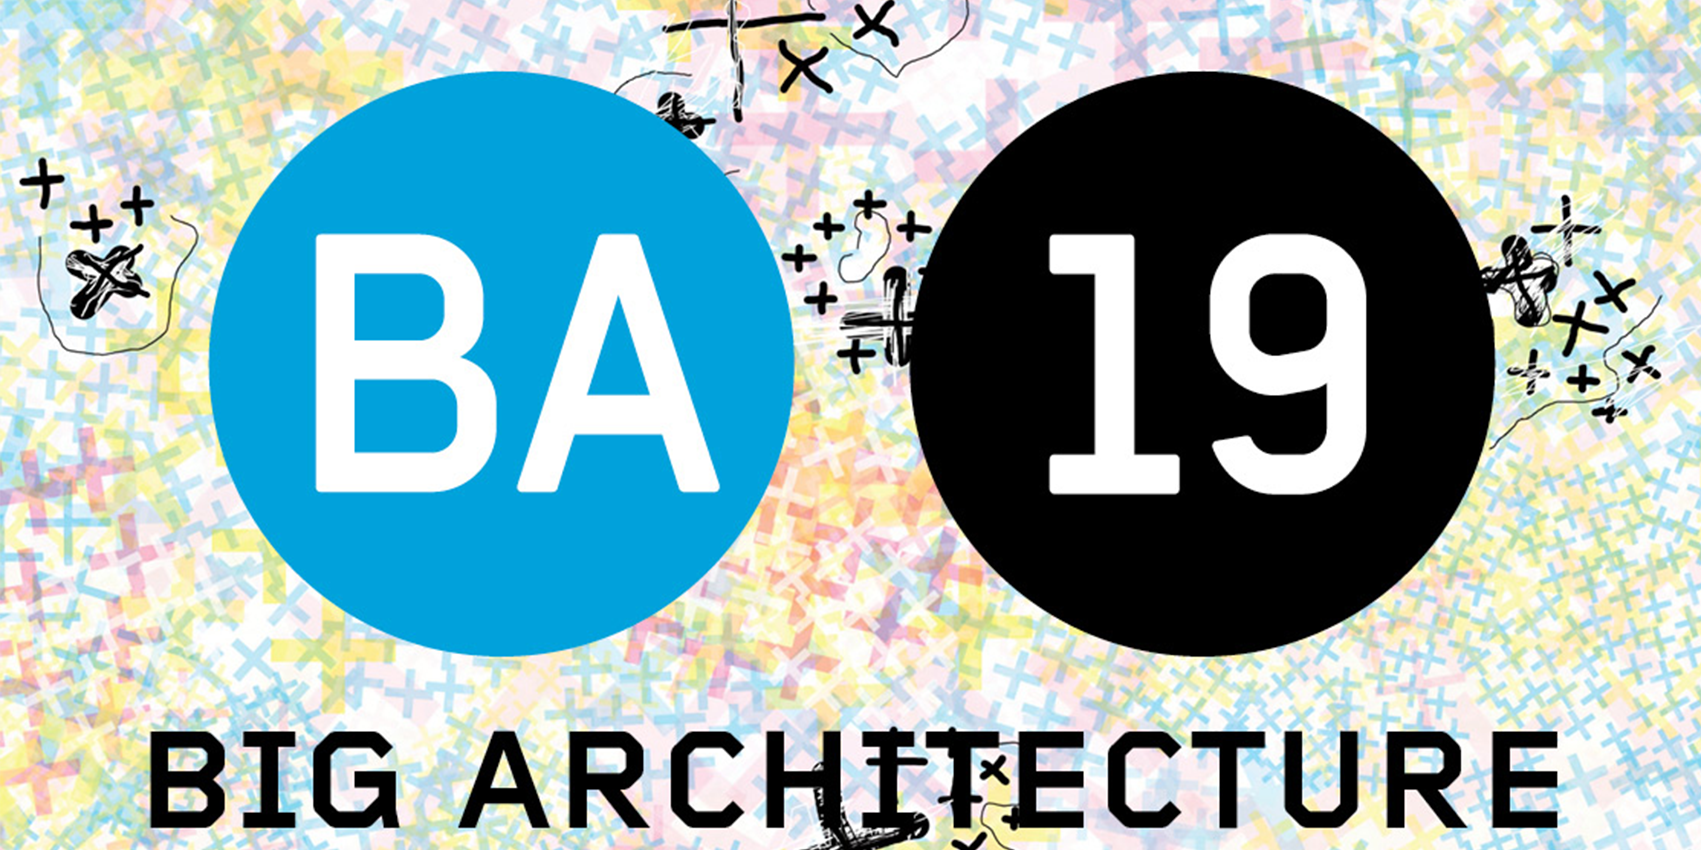 STUDIO HOUSE selected for the Big See Architecture Award 2019 and nominated for the best project (Grand Prix) in the Residential Architecture category - DAAA will participate at the Big Architecture Festival on Wednesday, April 17, in the City of Design, Dunajska cesta 123, Ljubljana, SloveniaMore details here:http://bigsee.euAnd here:http://bigsee.eu/studio-house-by-daaa-romania/